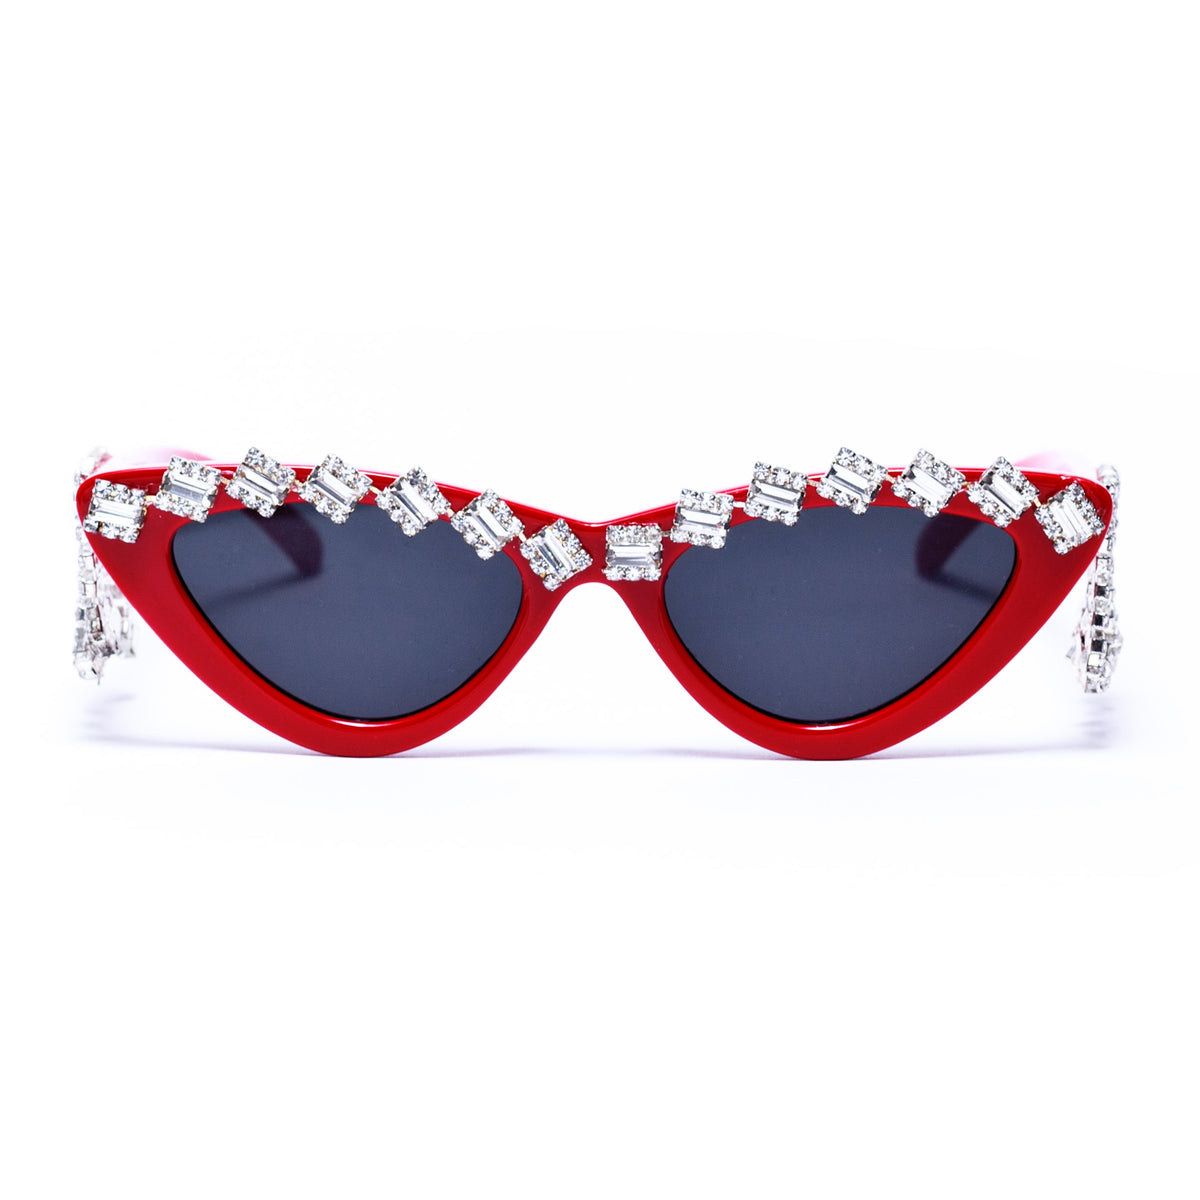 SHOWSTOPPER  Eyewear Sunglasses Collection, Tnemnroda man- NRODA